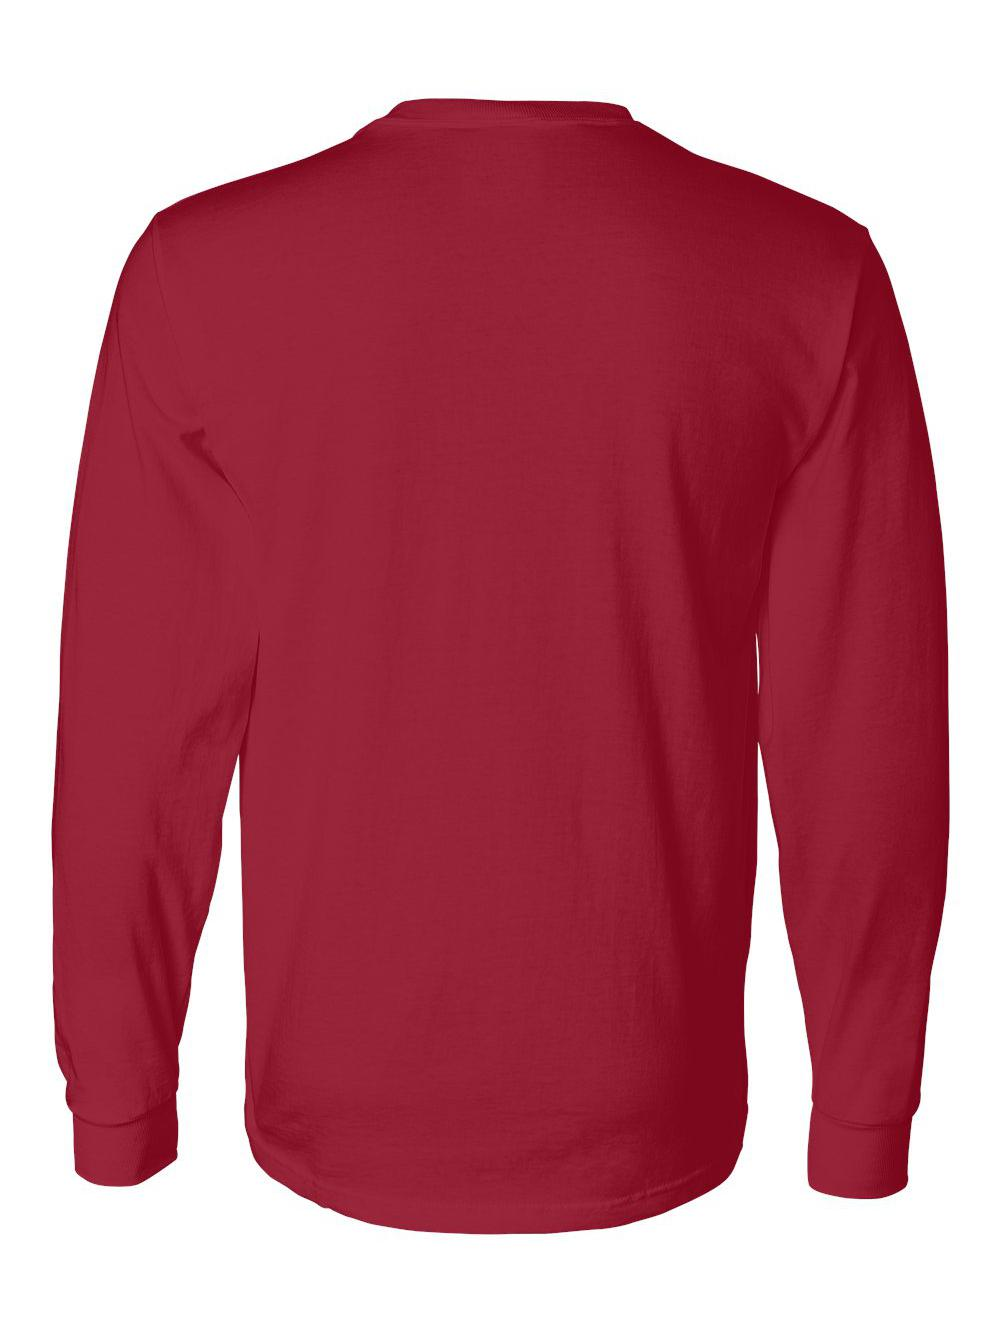 Fruit-of-the-Loom-HD-Cotton-Long-Sleeve-T-Shirt-4930R thumbnail 76